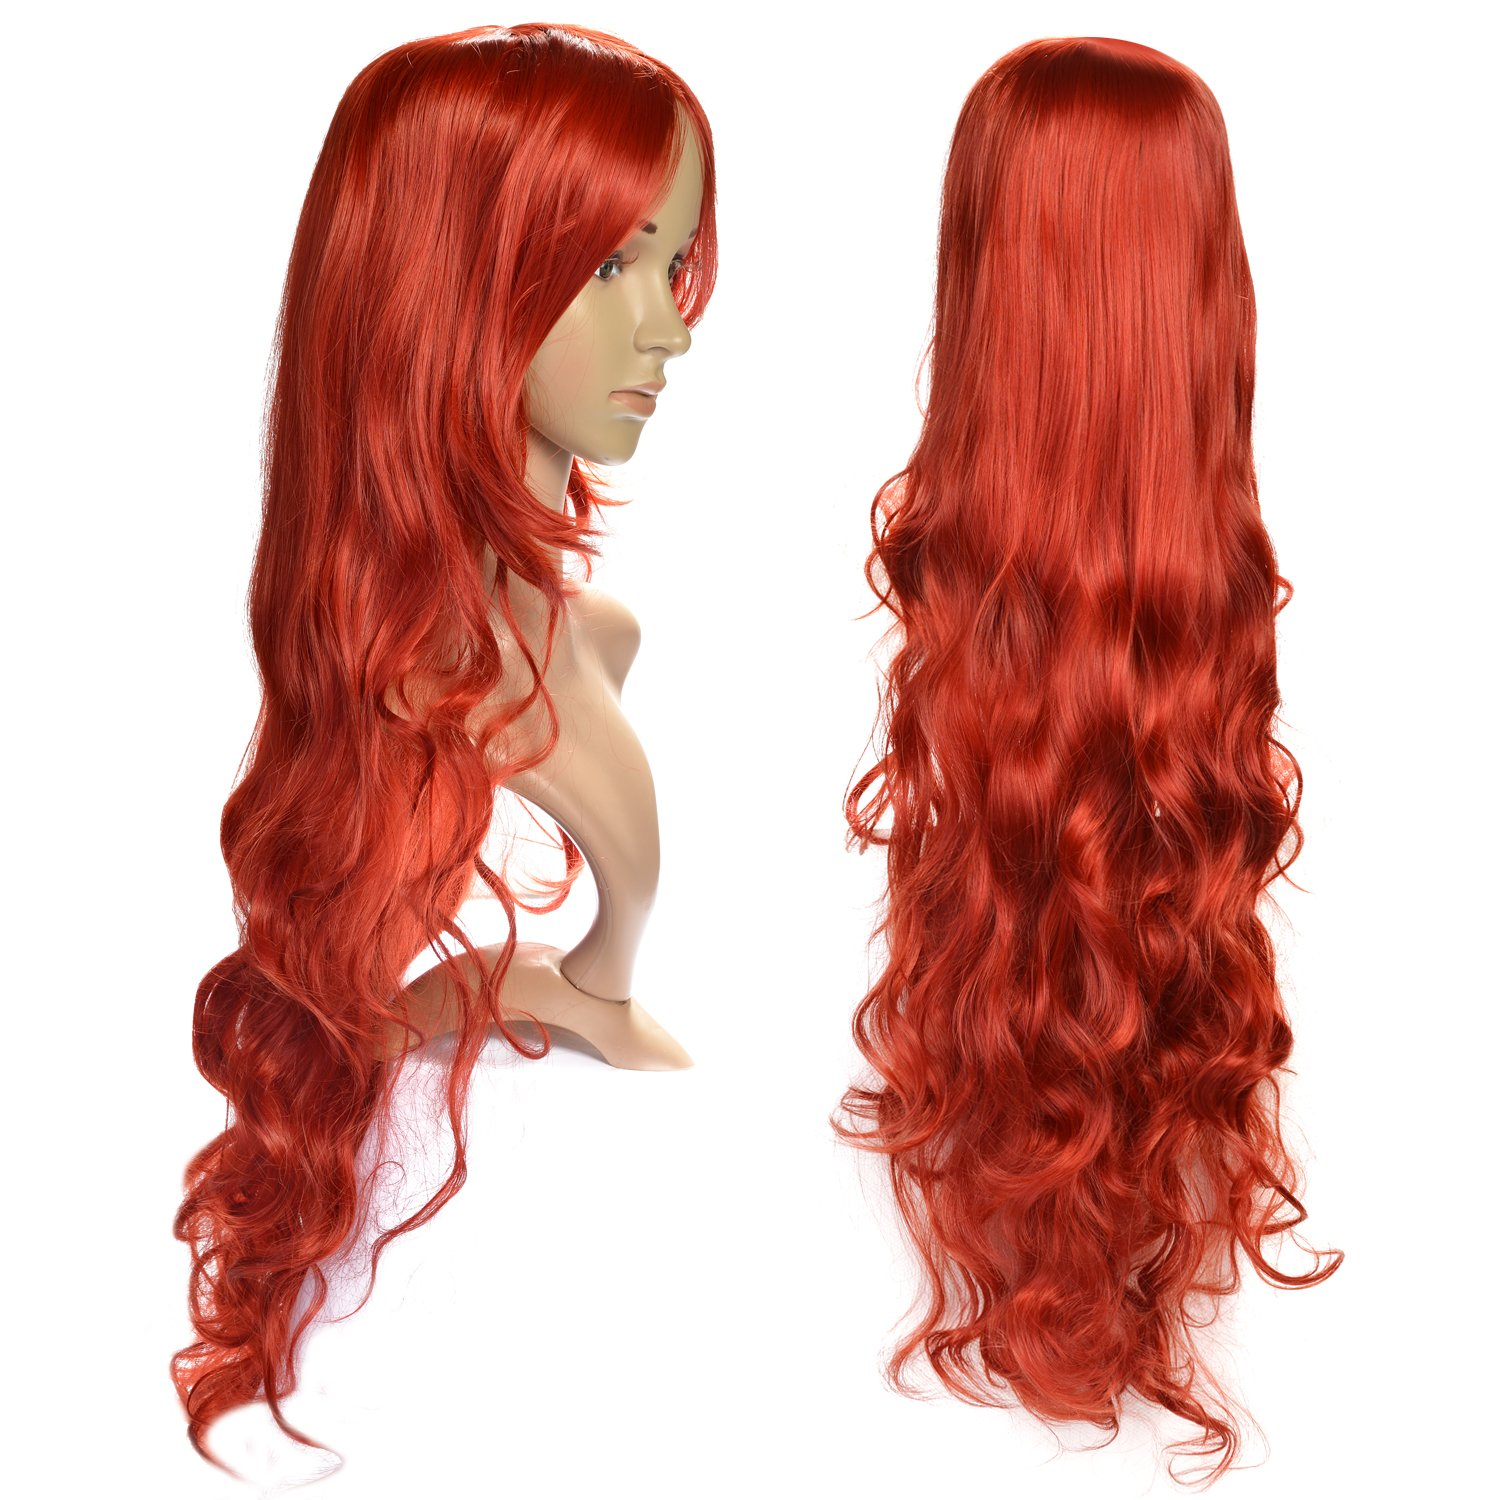 1750cf7f930 Amazon.com   AGPtek Heat Resistant Curly Wavy Long Cosplay Wigs 3 Color  (Red)   Hair Replacement Wigs   Beauty